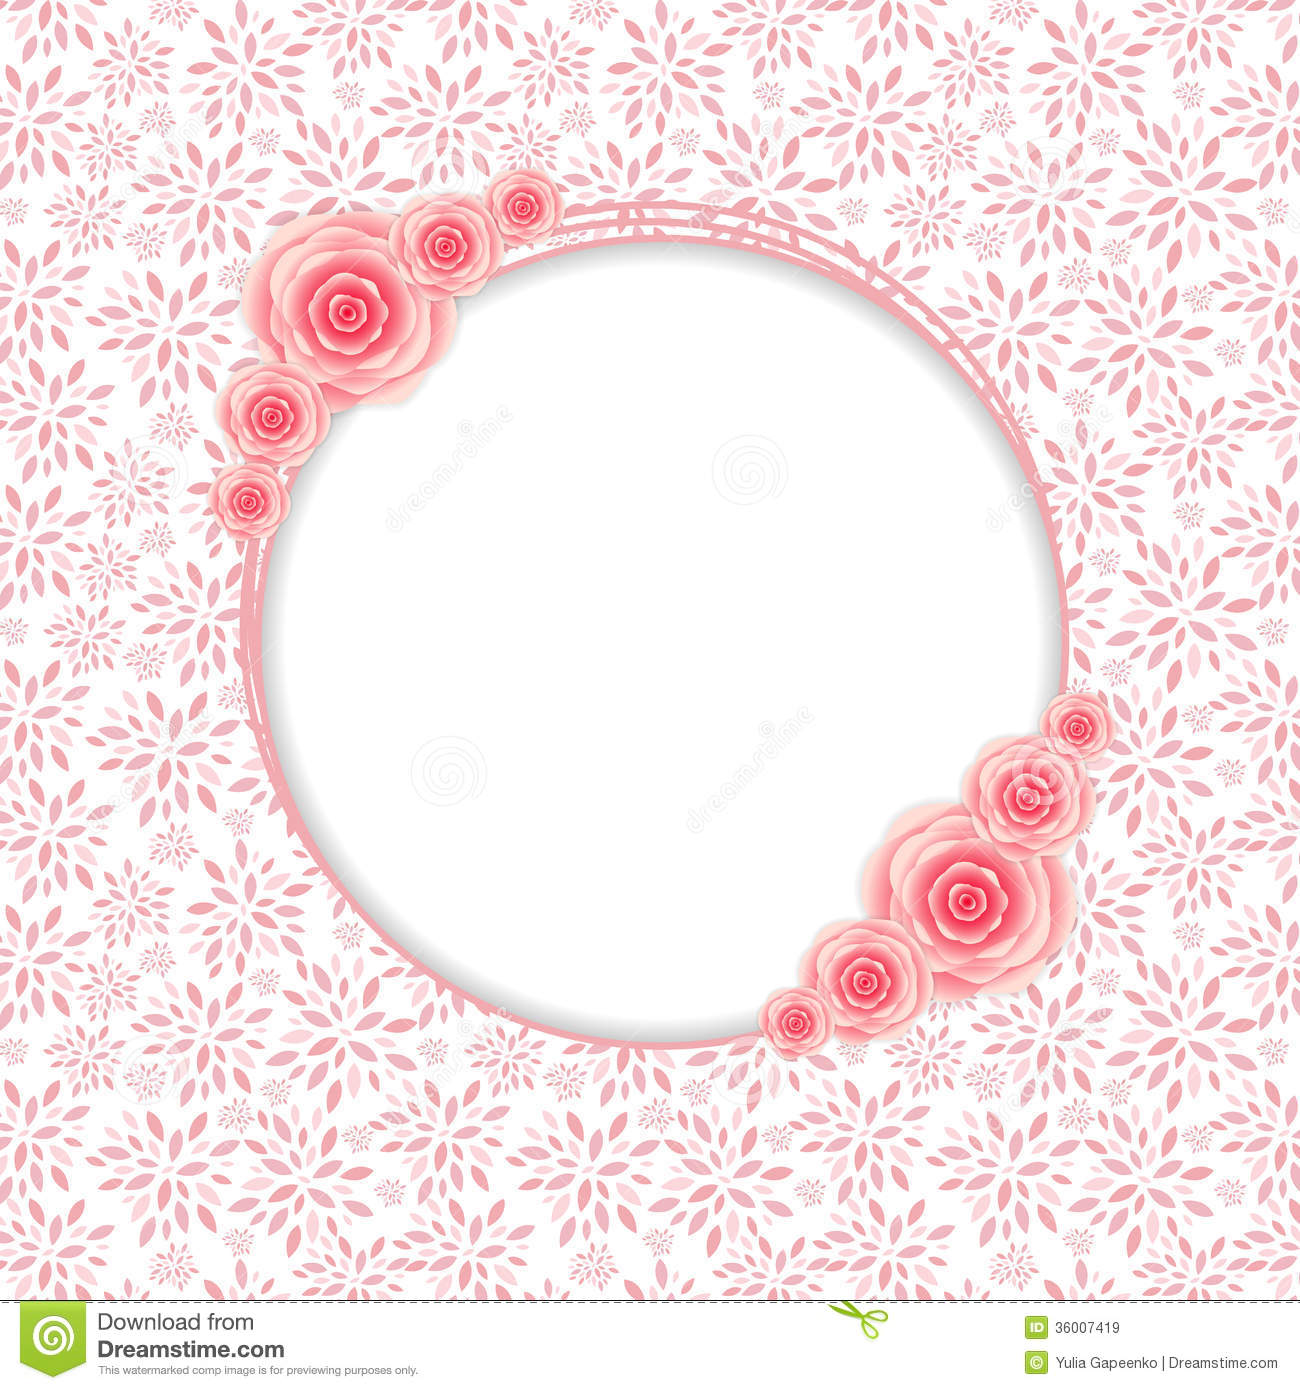 3d Love Red Heart Wallpaper Cute Frame With Rose Flowers Vector Illustration Royalty